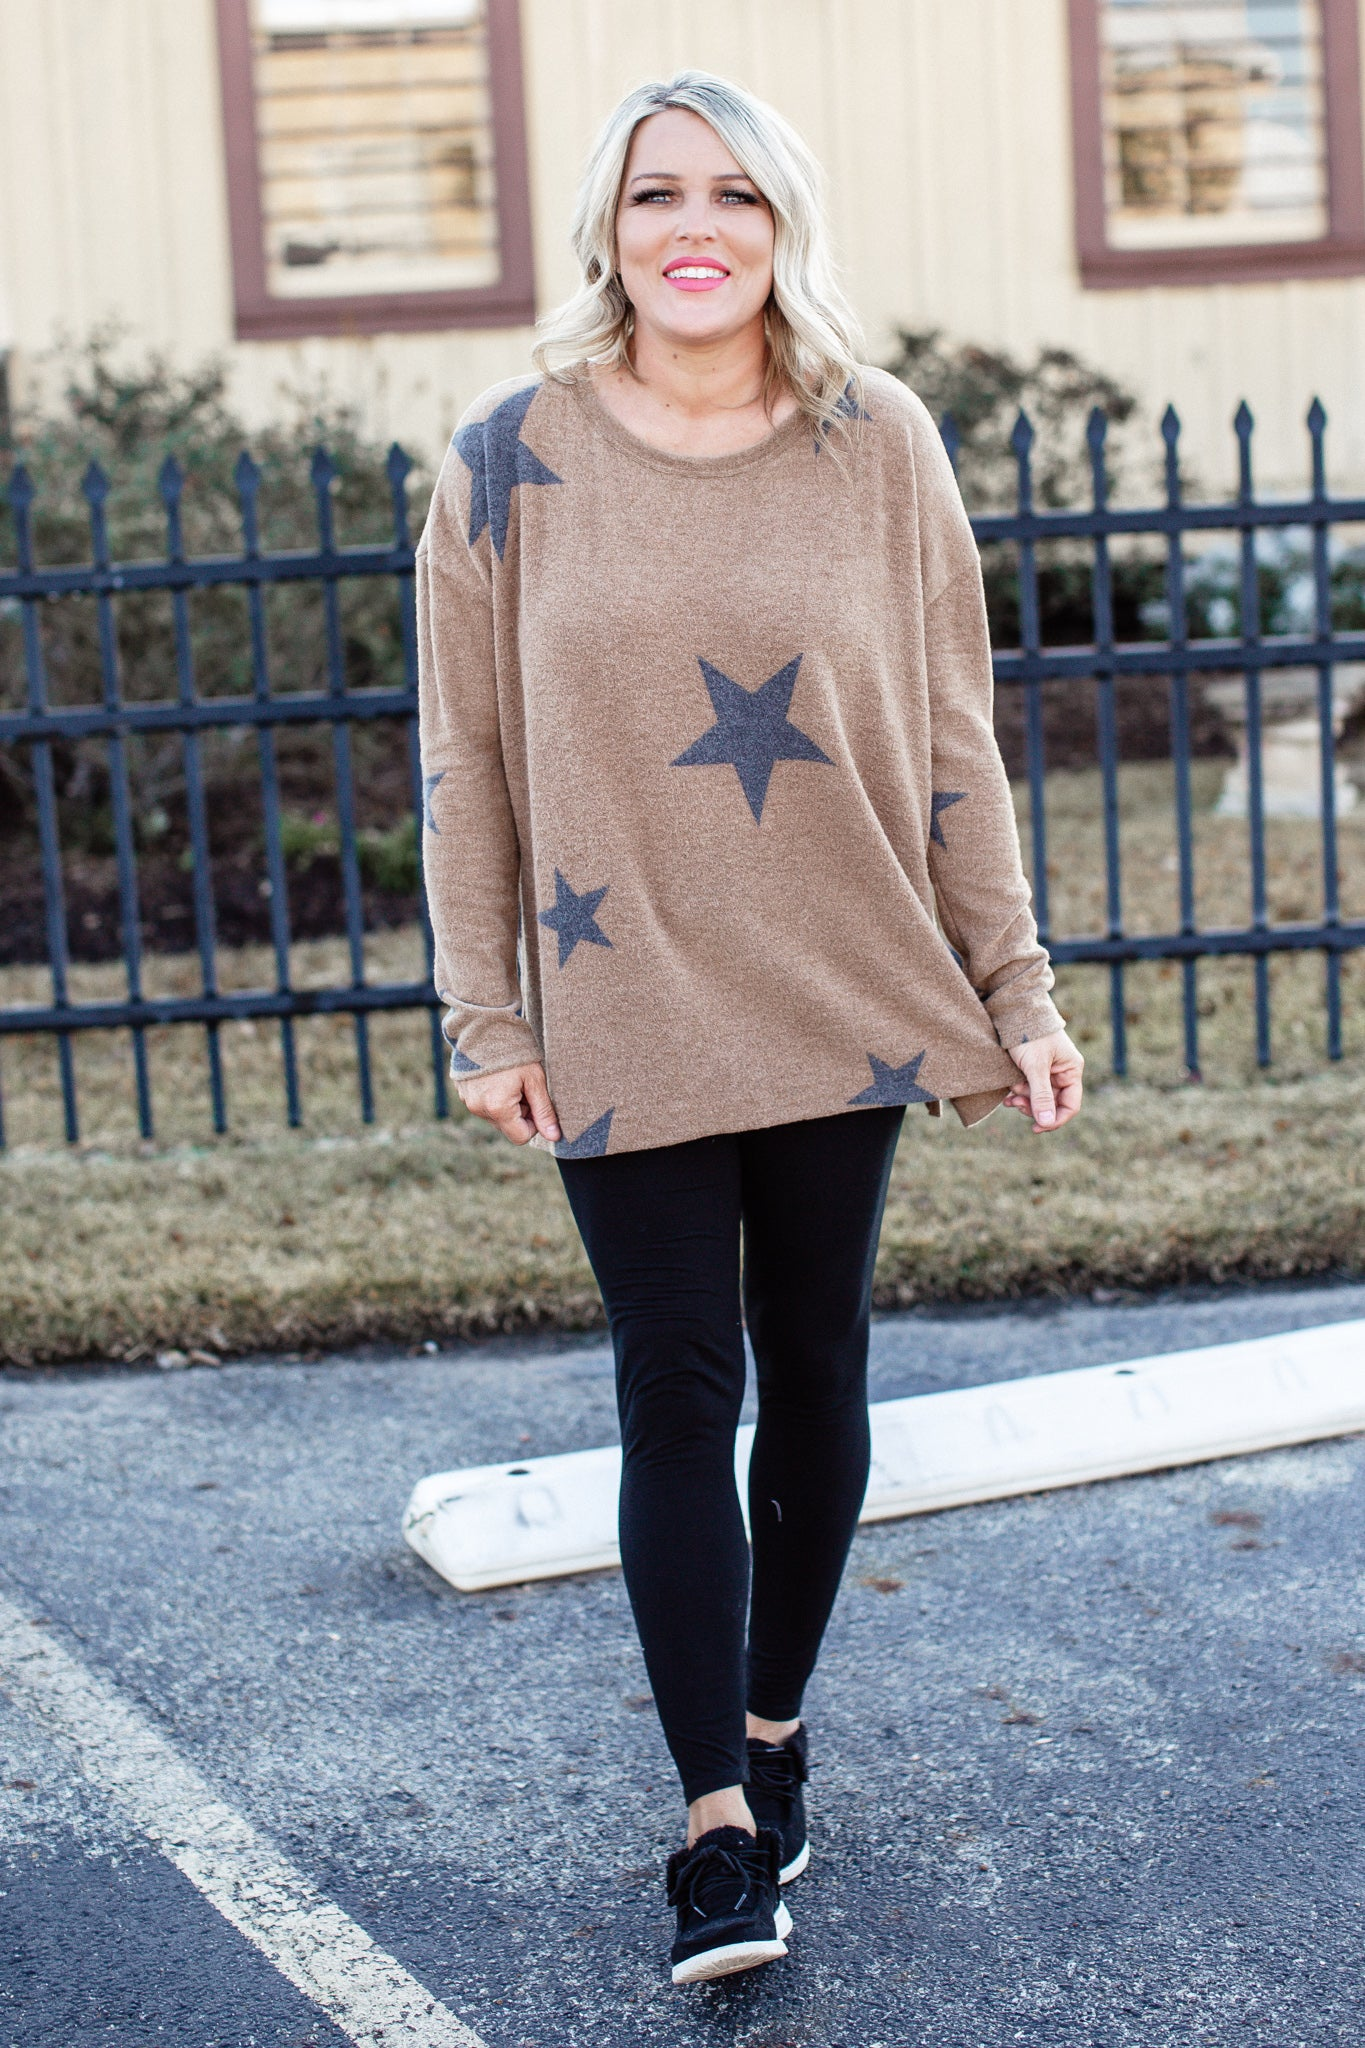 Mocha Brushed Star Top (S-3X)